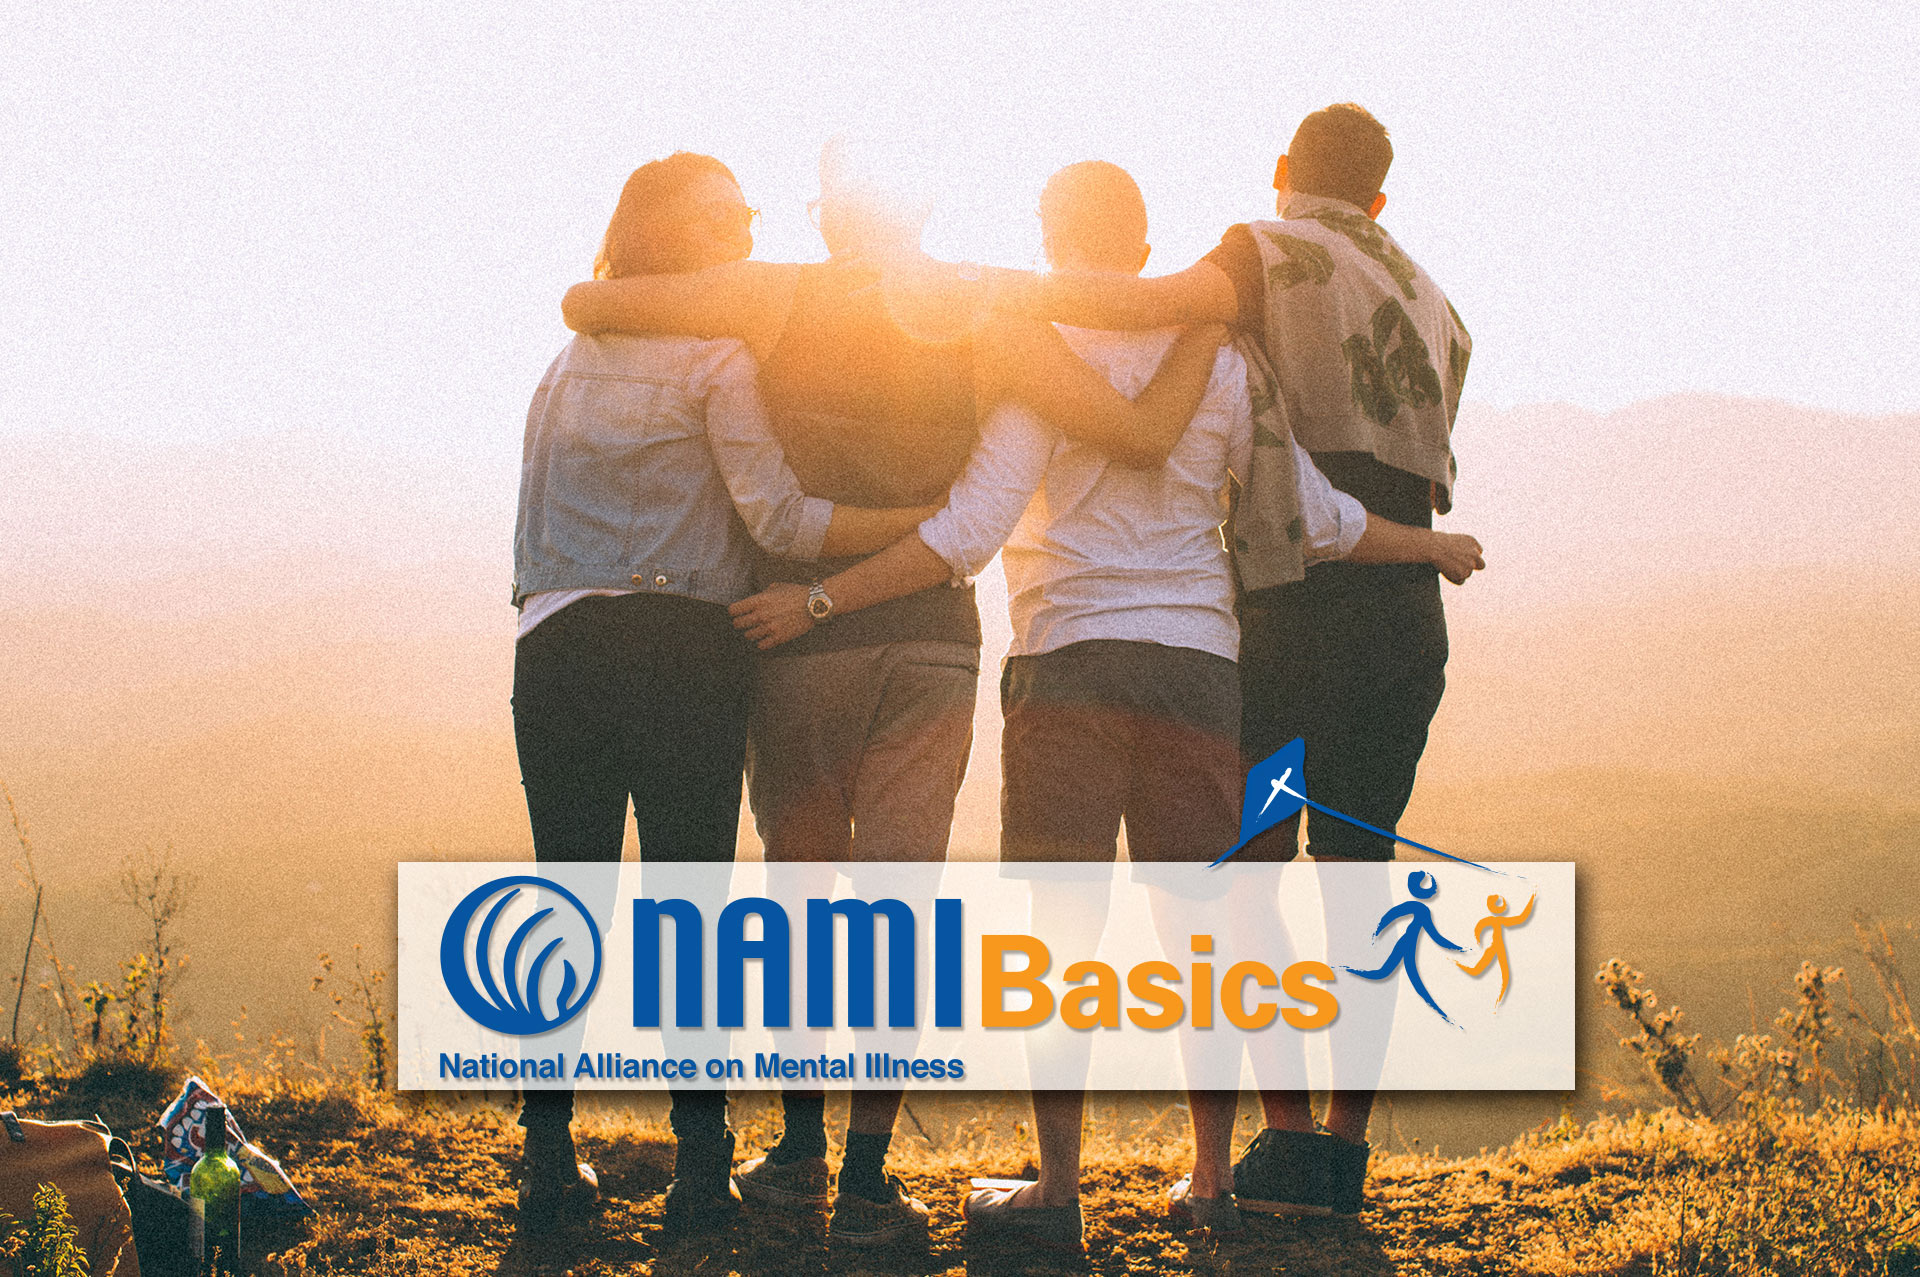 NAMI Basics Chicago